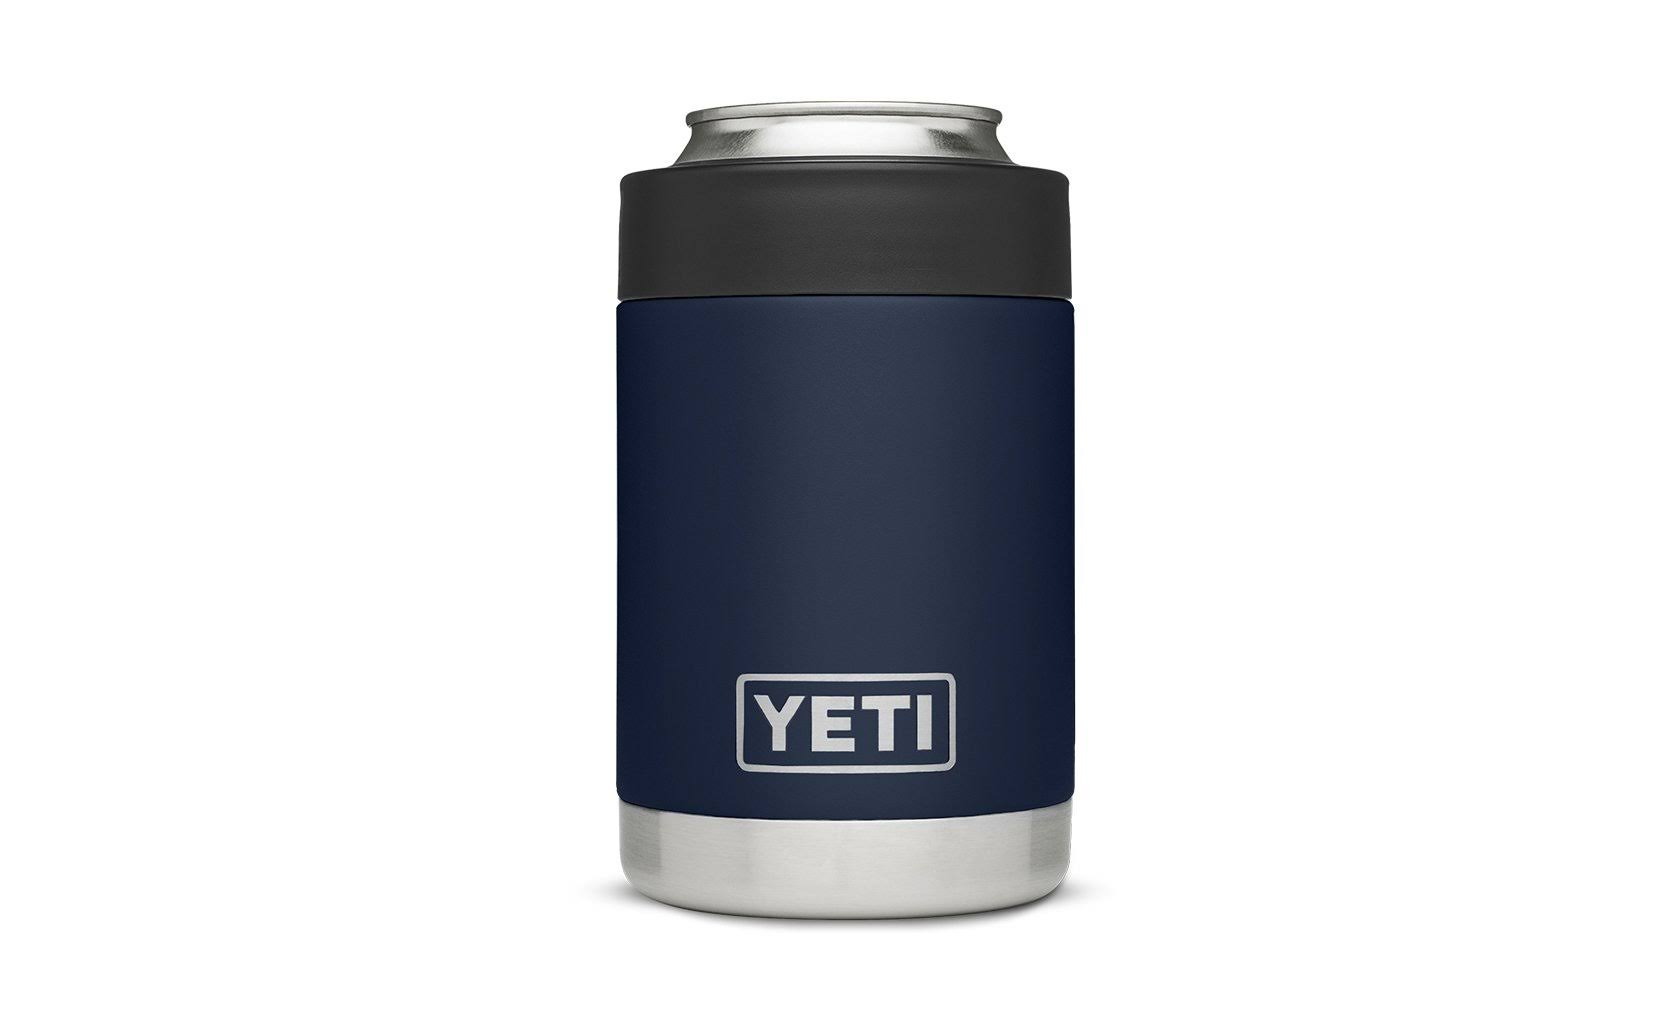 Yeti Rambler Colster - Stainless Steel, Navy Blue